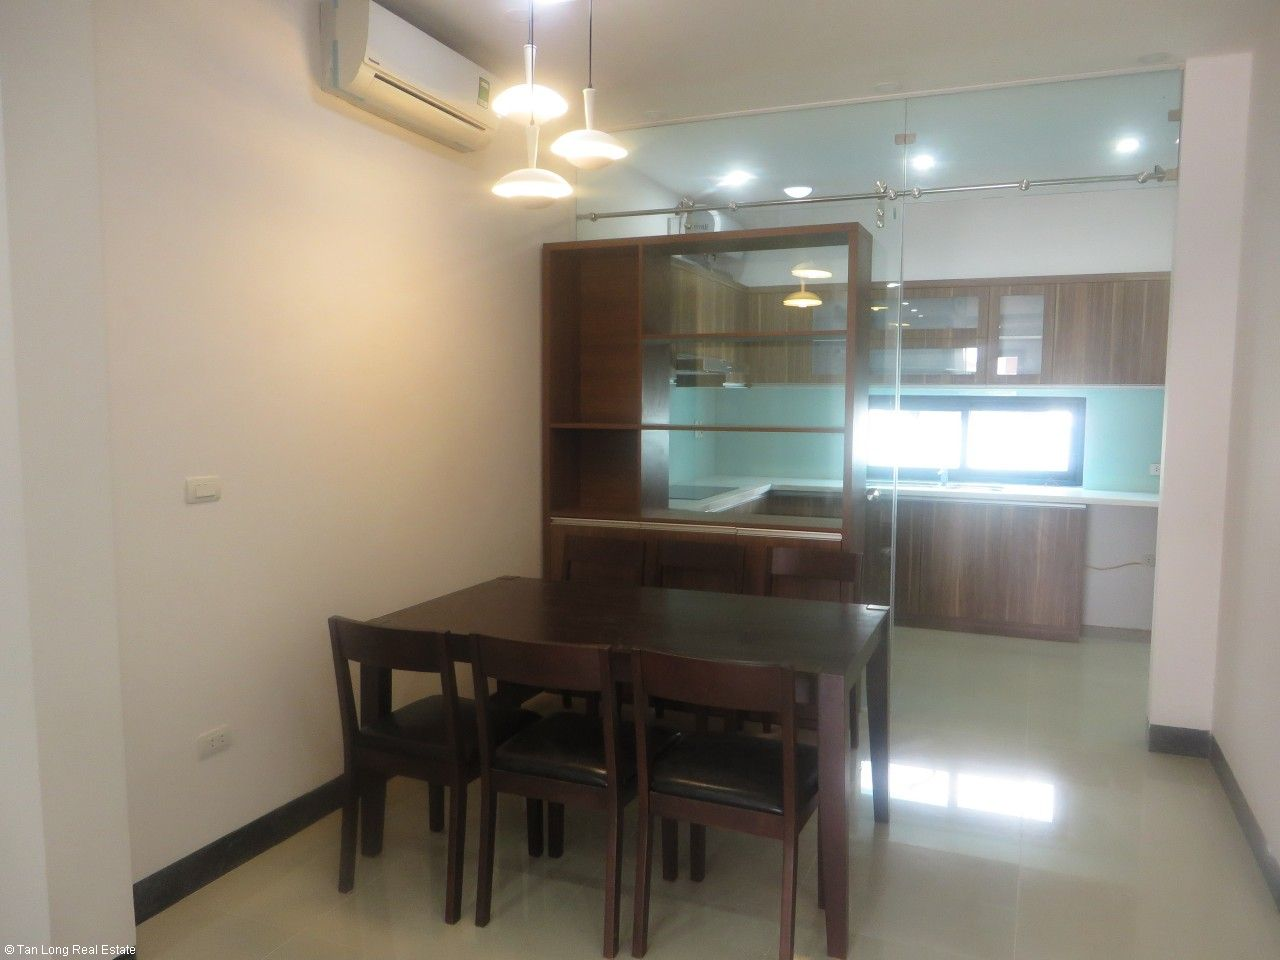 House in Gamuda, Hoang Mai district, Ha Noi for rent. 4